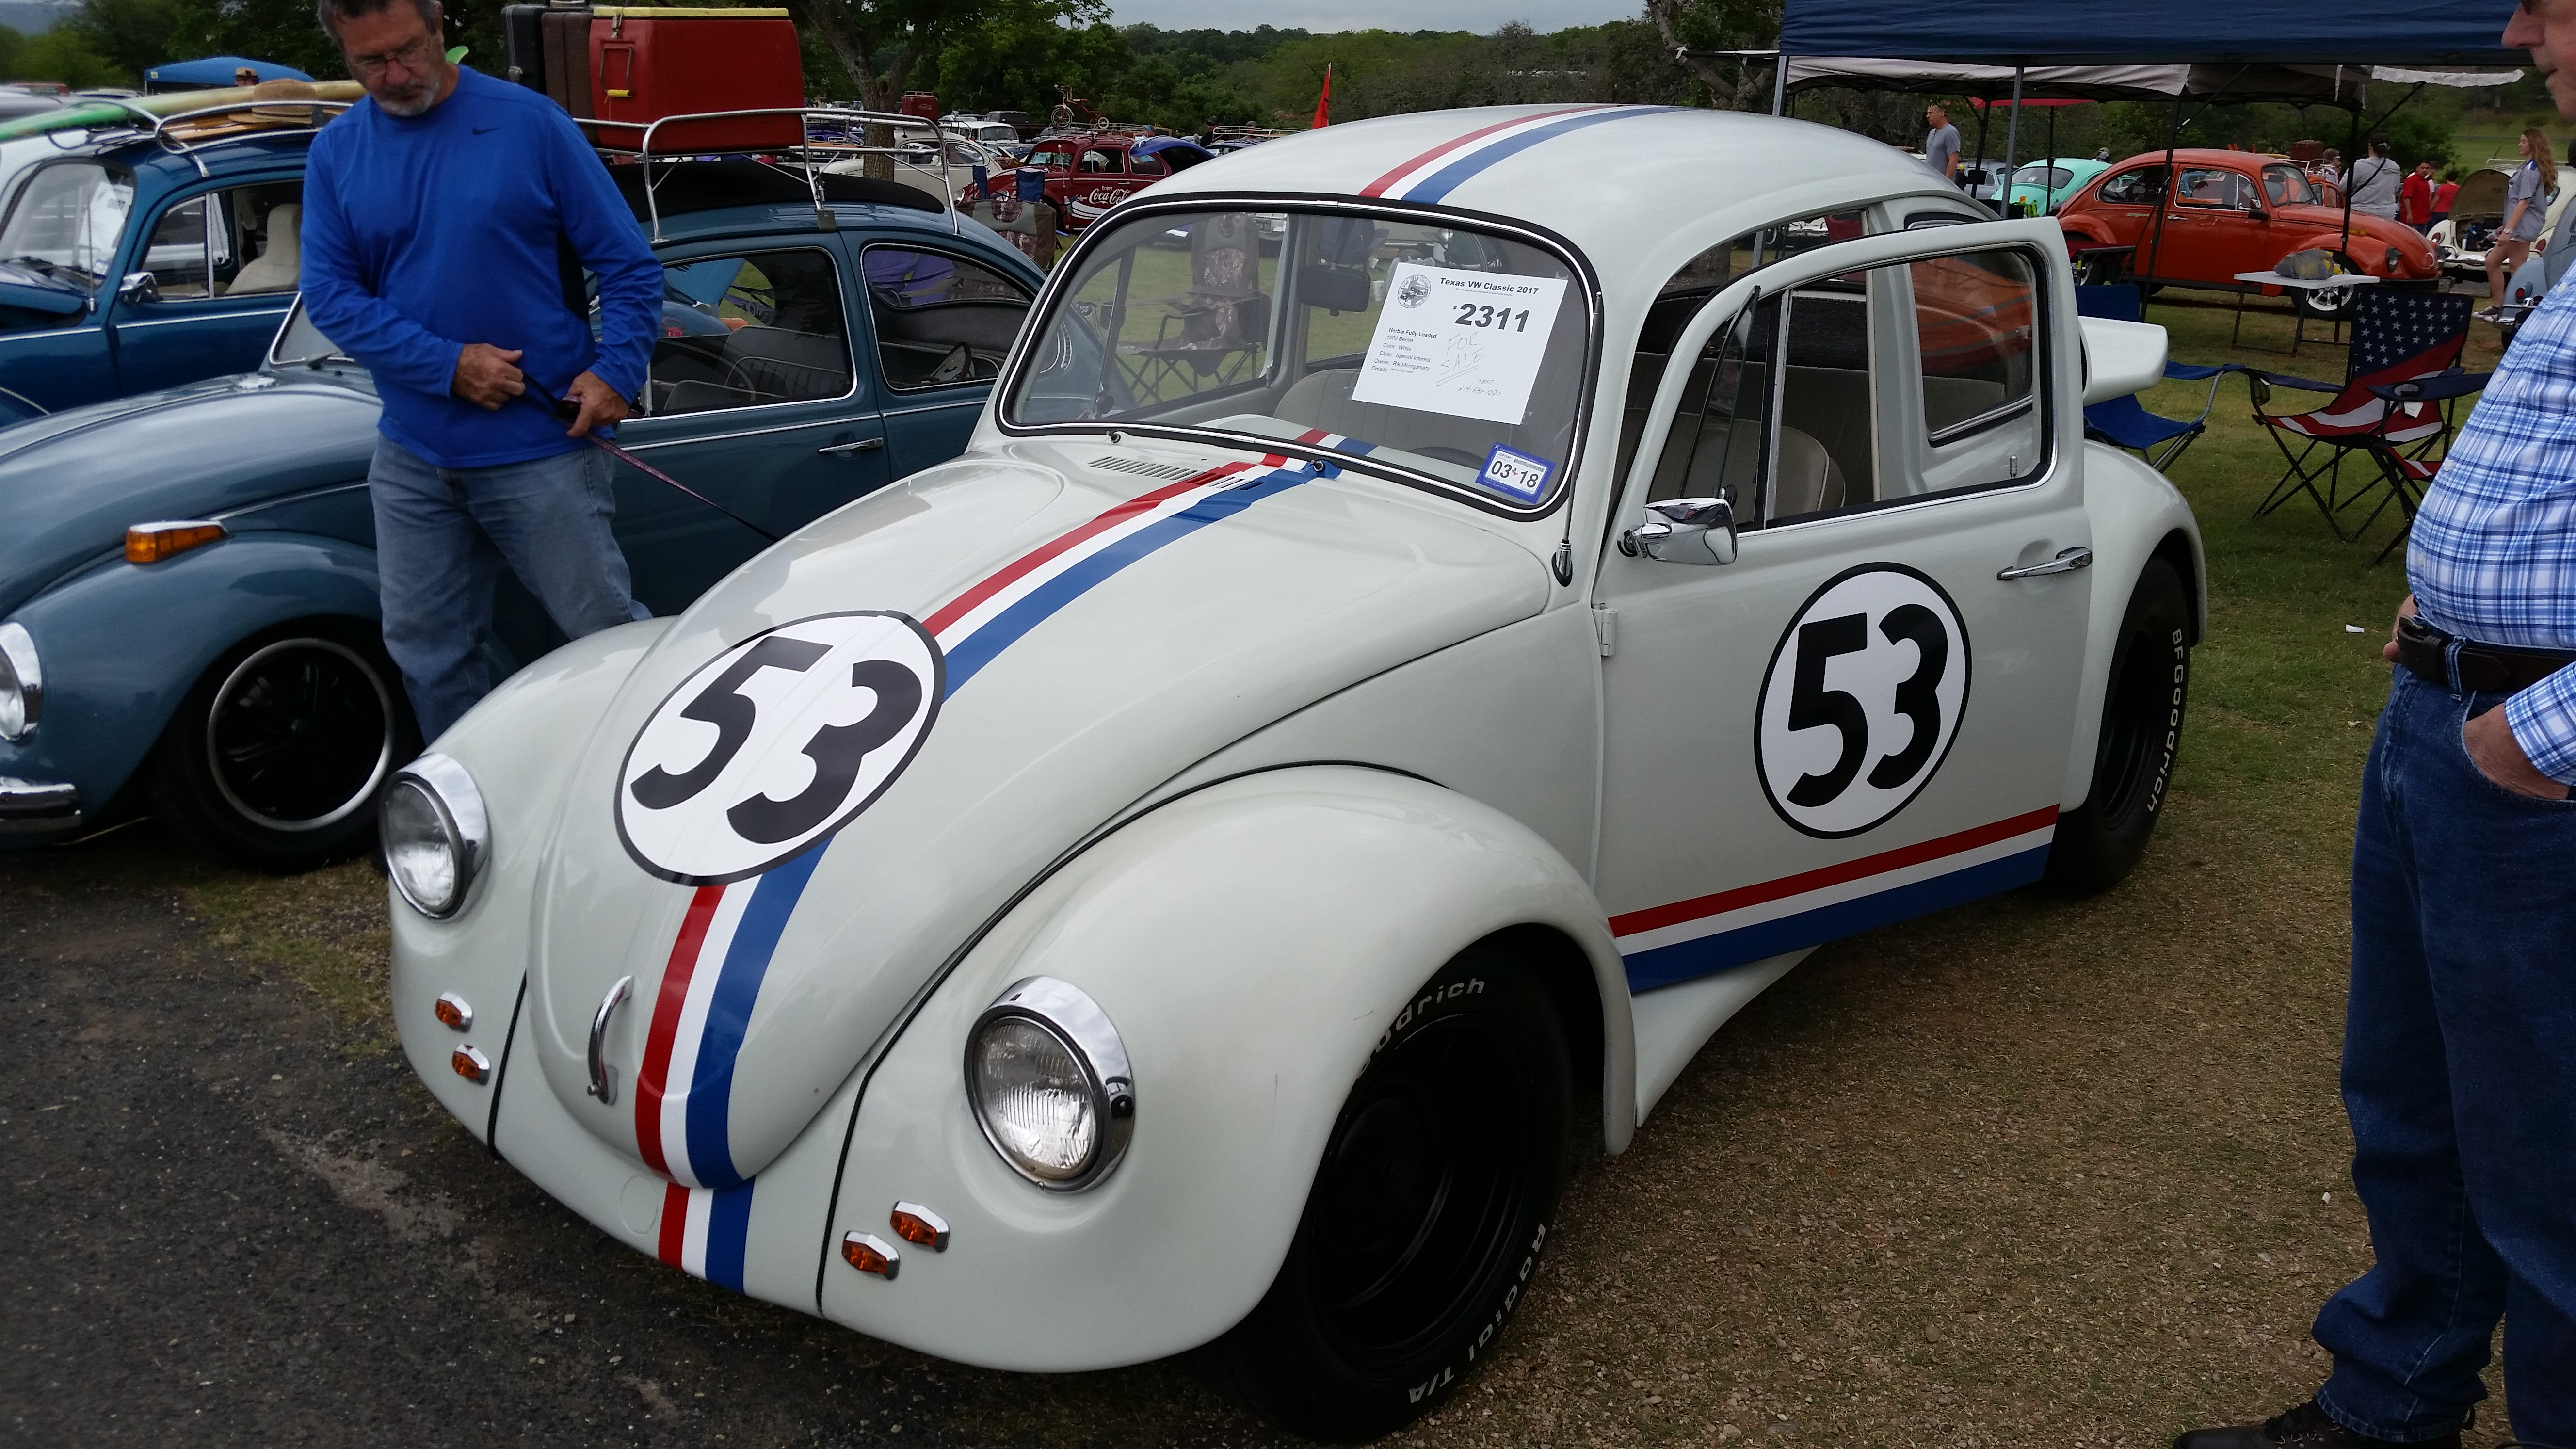 Herbie Fully Loaded (#2311) - Texas VW Classic